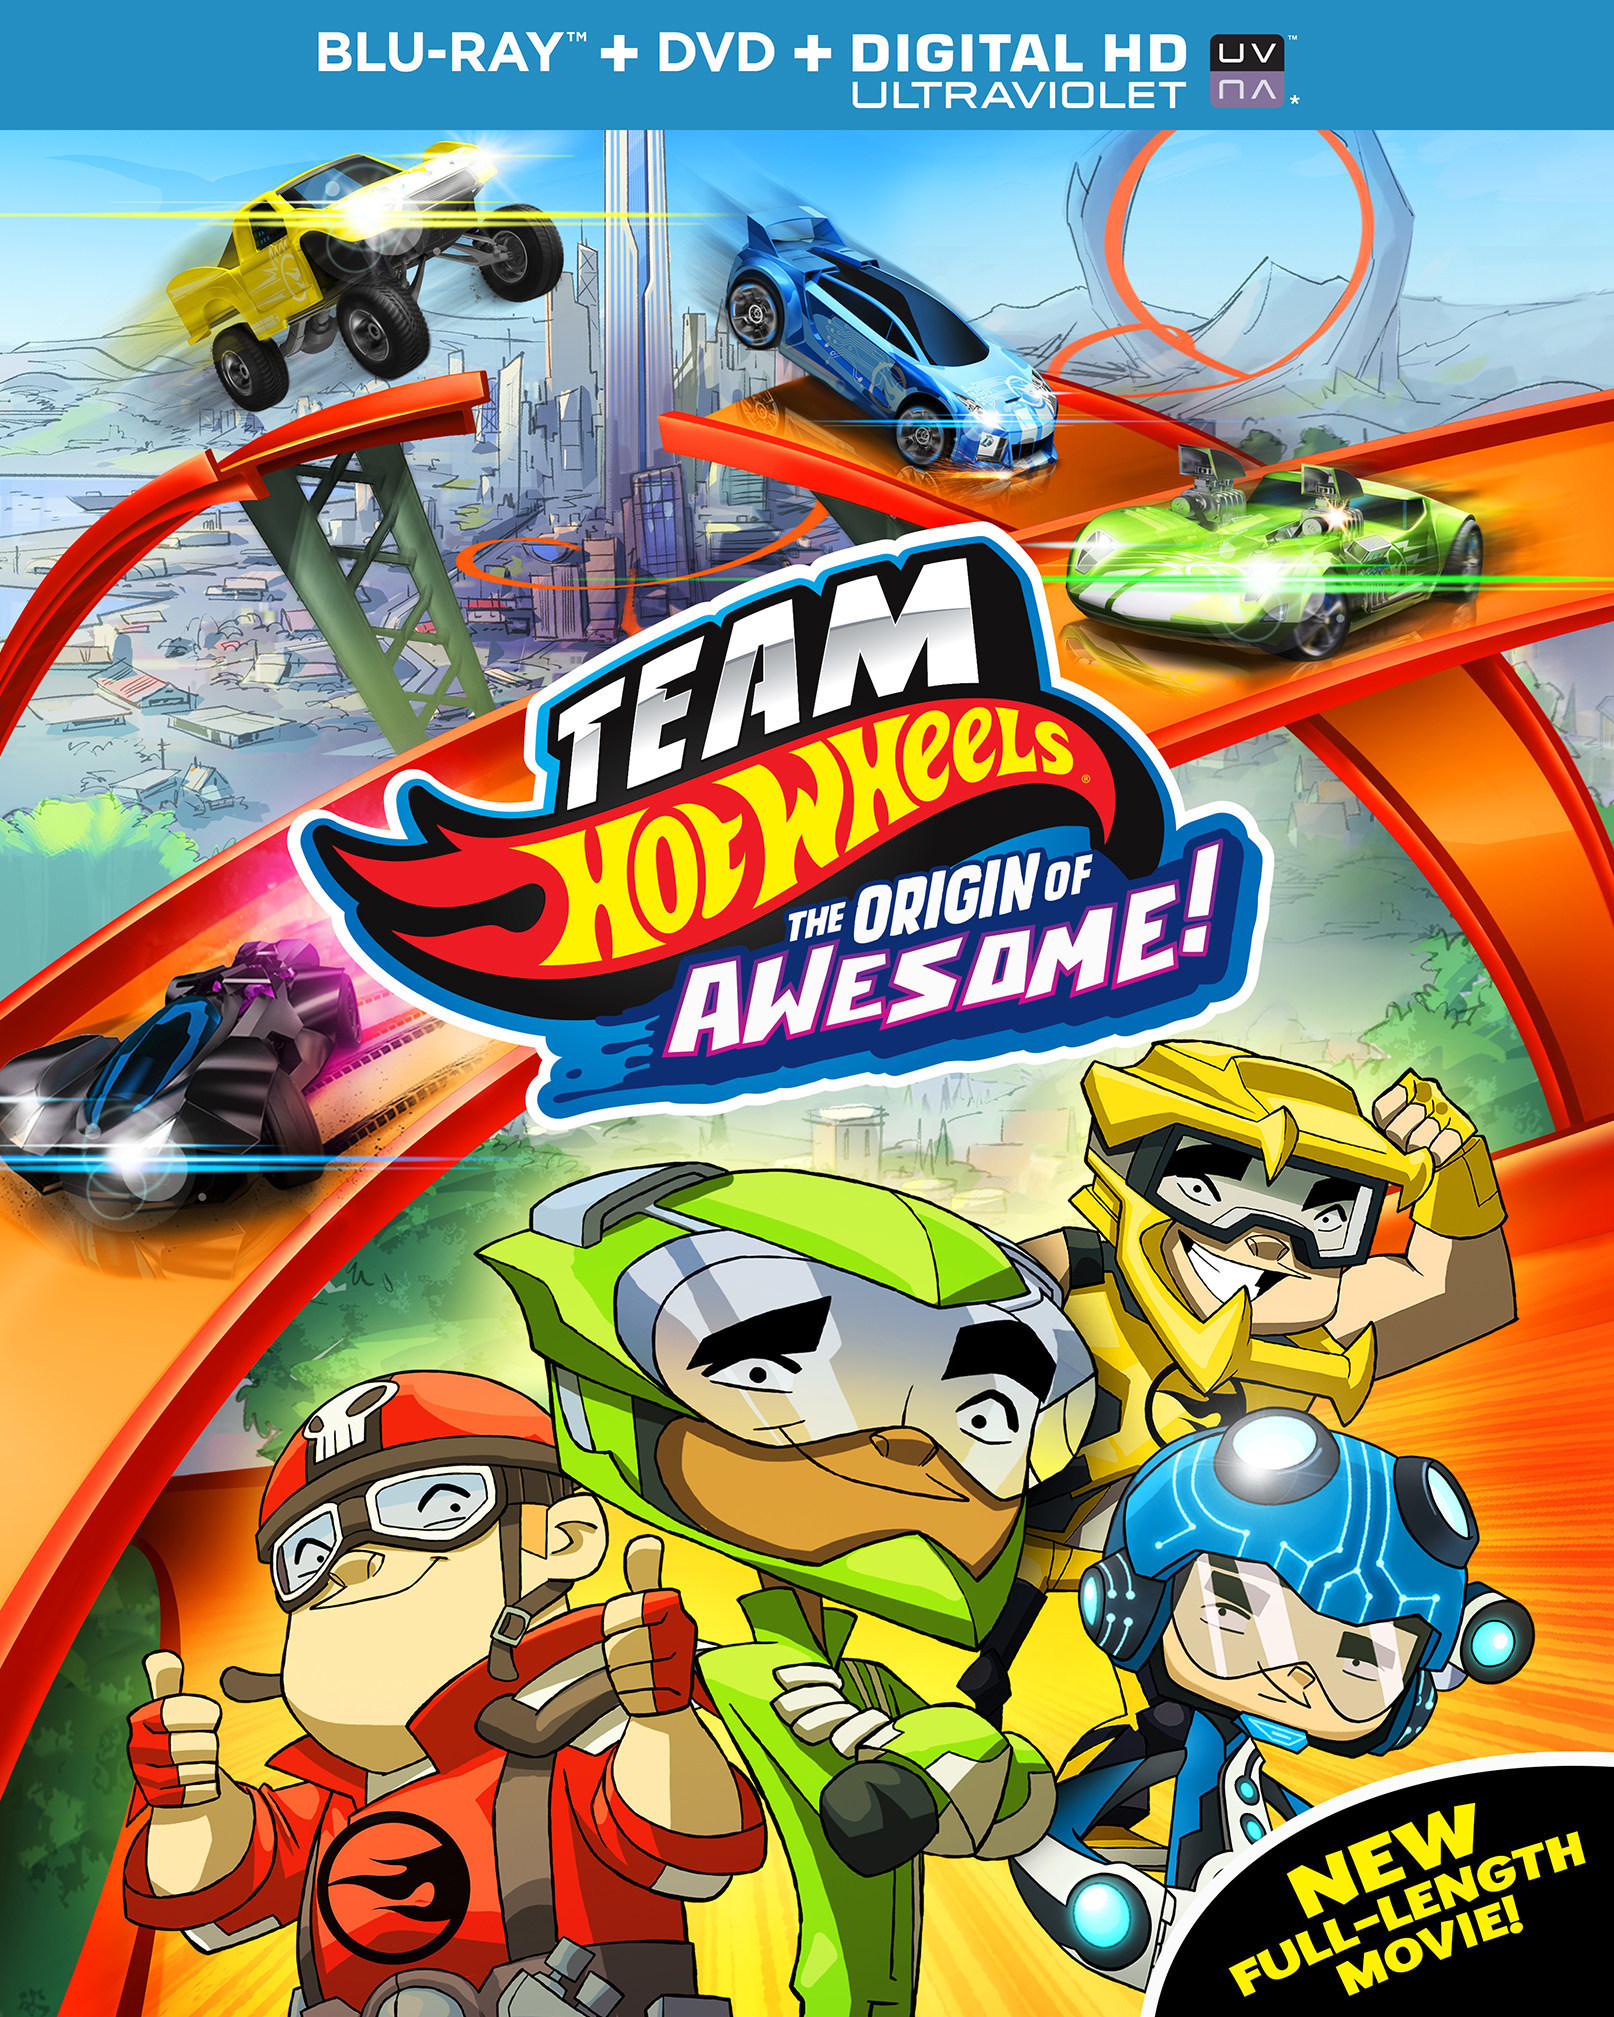 TEAM OT WHEELS: THE ORIGIN OF AWESOME Coming to DVD This September